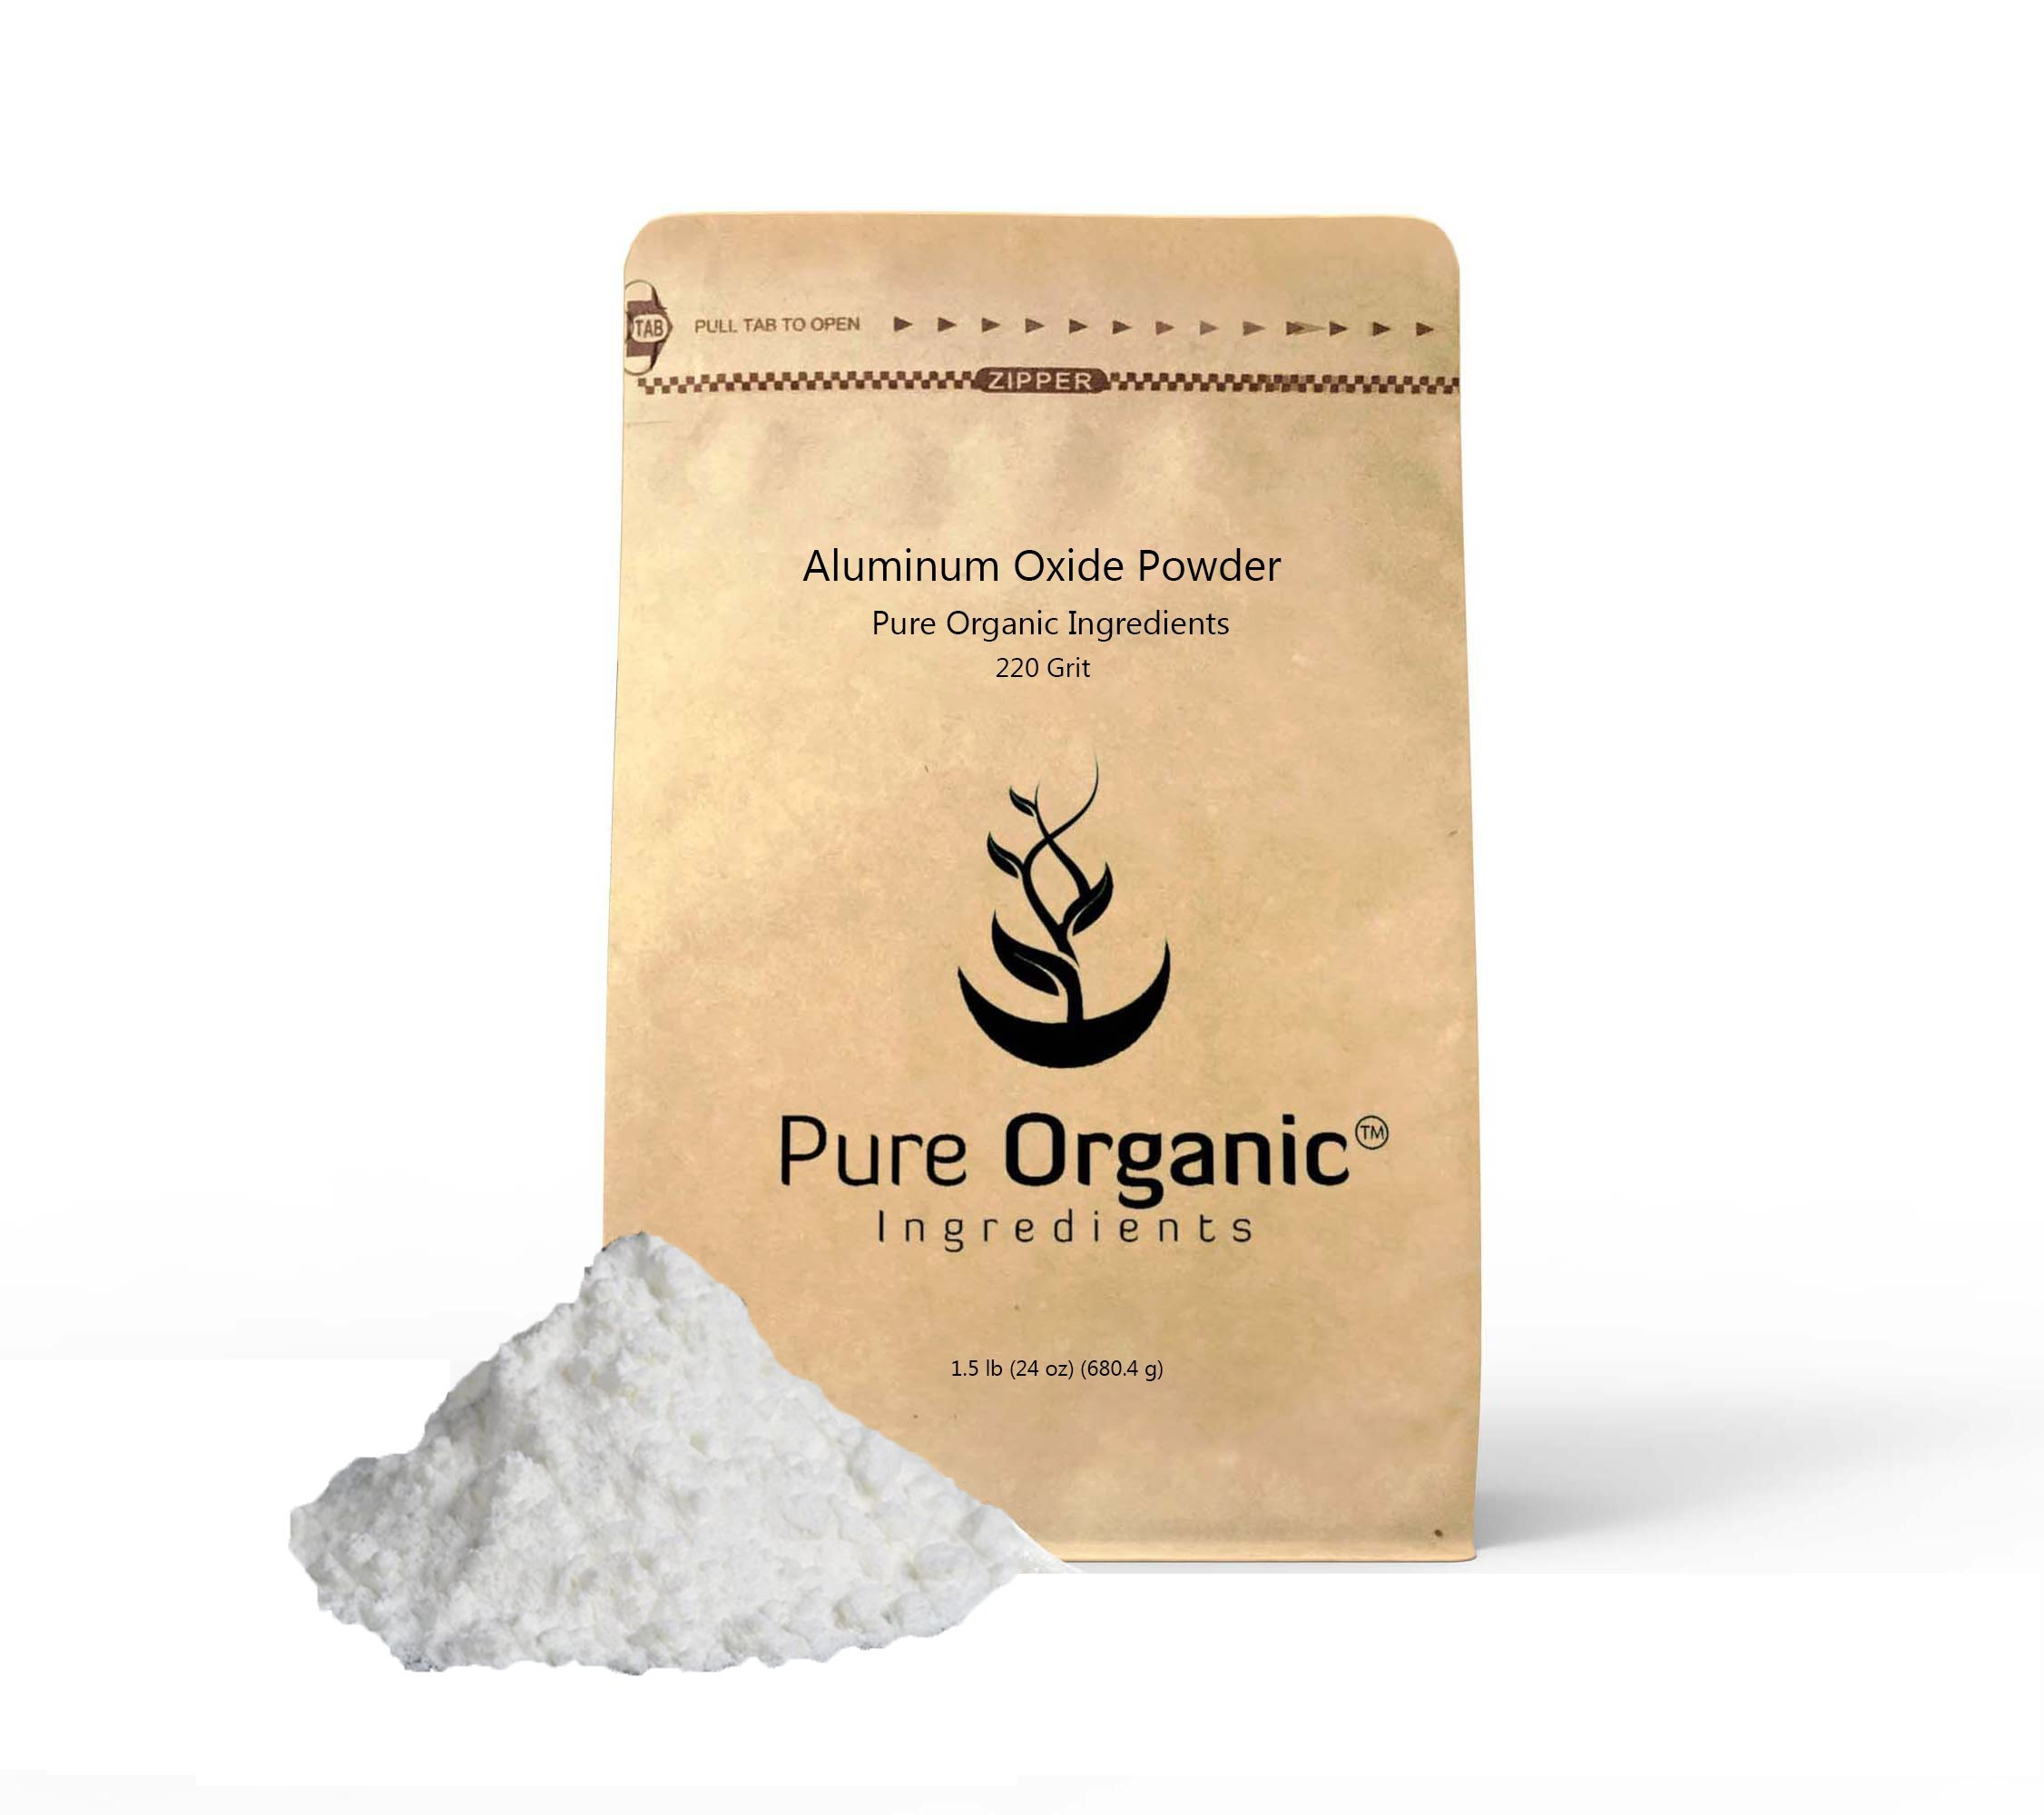 Aluminum Oxide (2 lb. (32 oz.)) by Pure Organic Ingredients, Fine Powder 220 Grit for Etching, Polishing, Sharpening